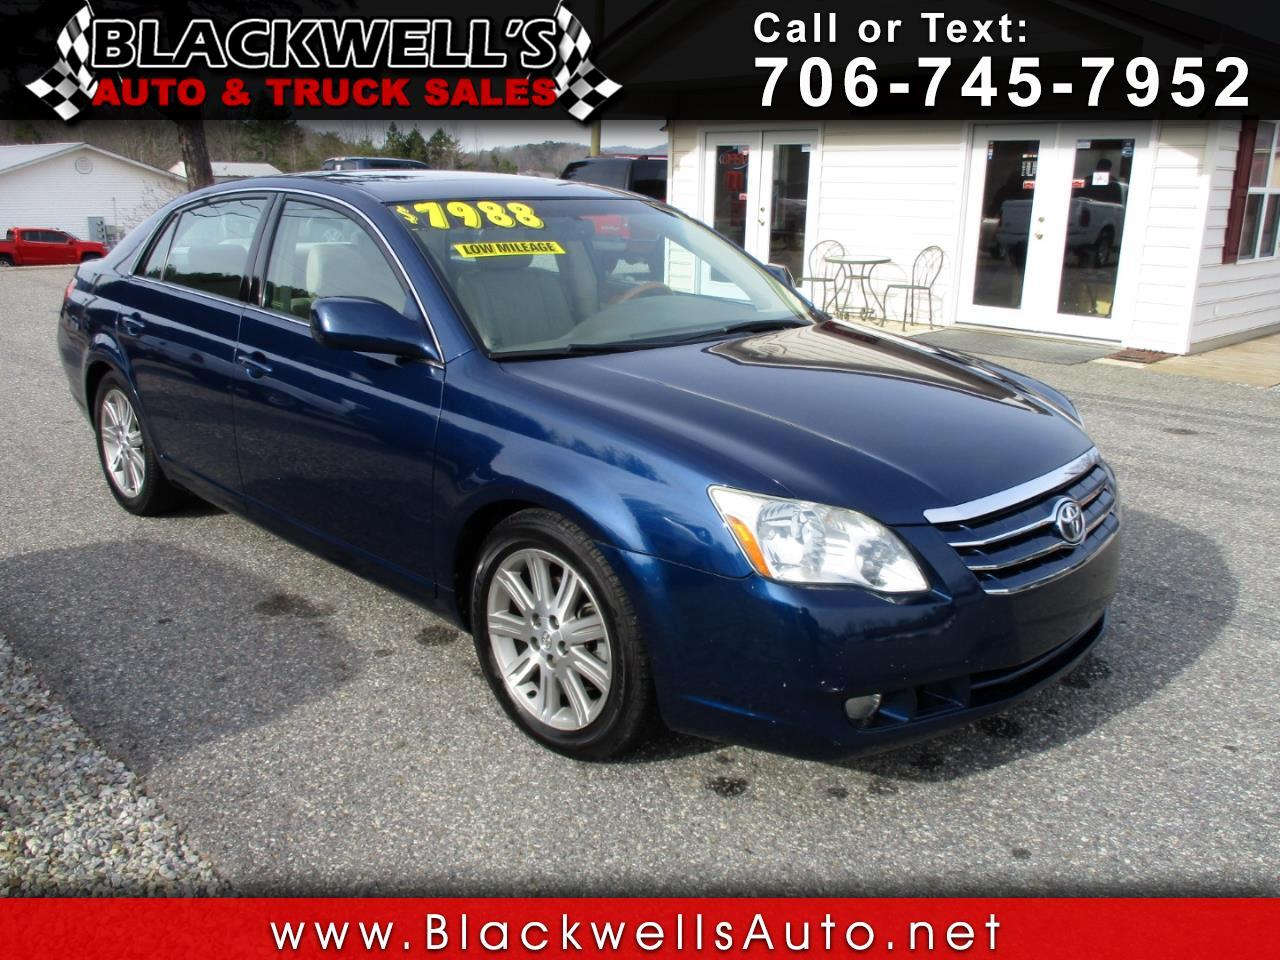 2006 Toyota Avalon 4dr Sdn Touring (Natl)